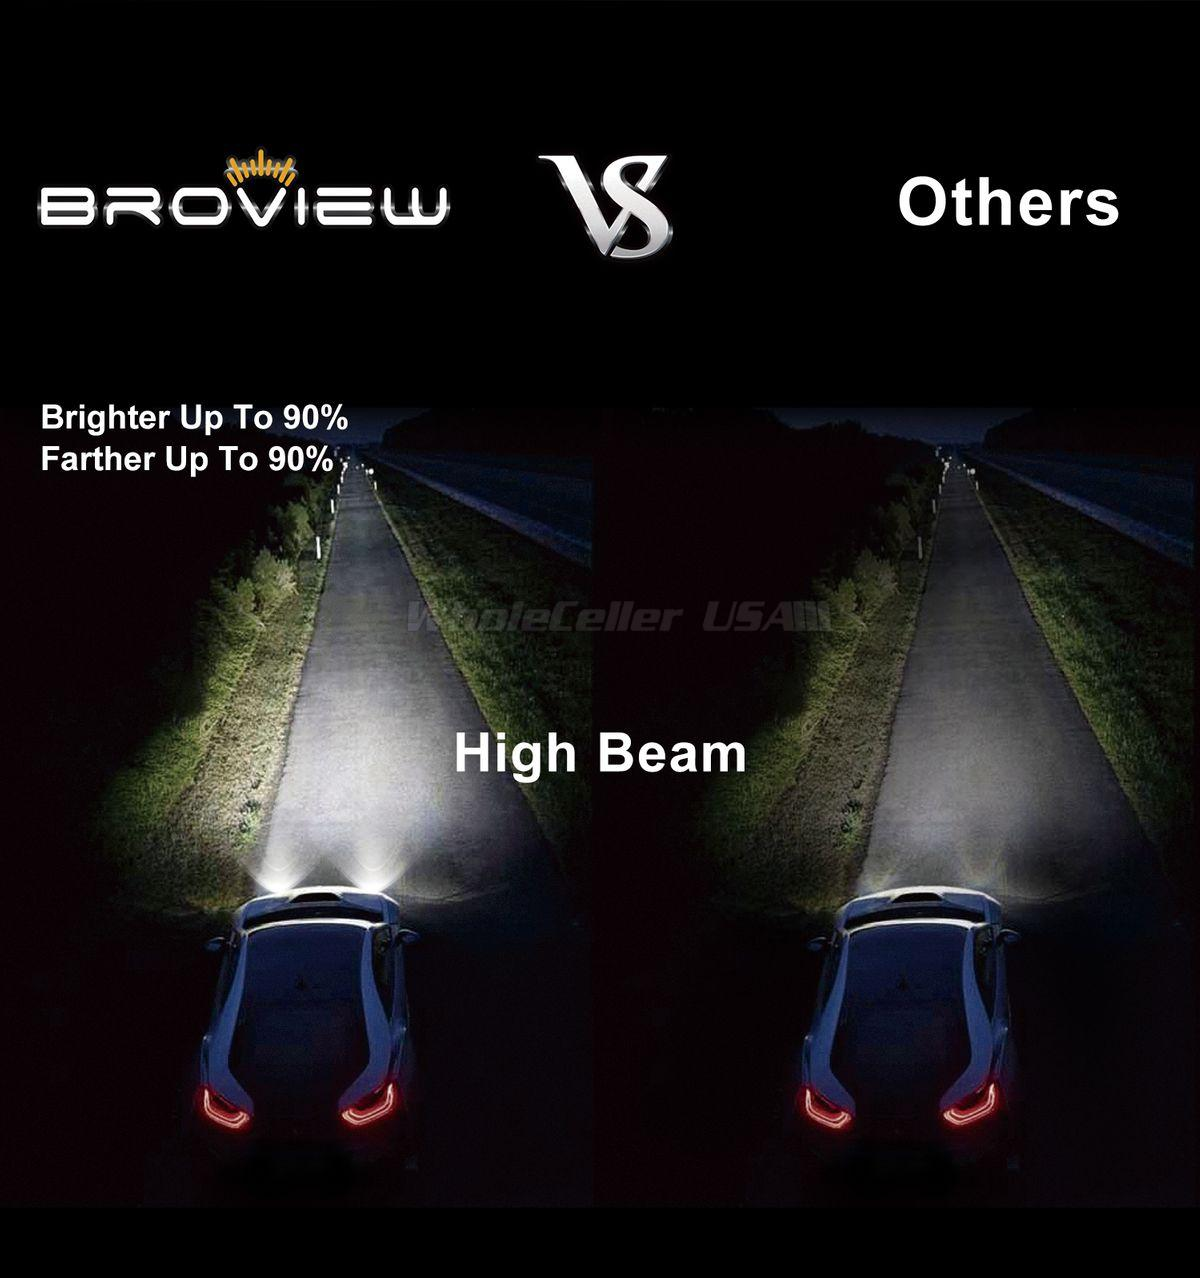 Broview S Series S7 H7 Philips 8000lm Headlamp Low Beam